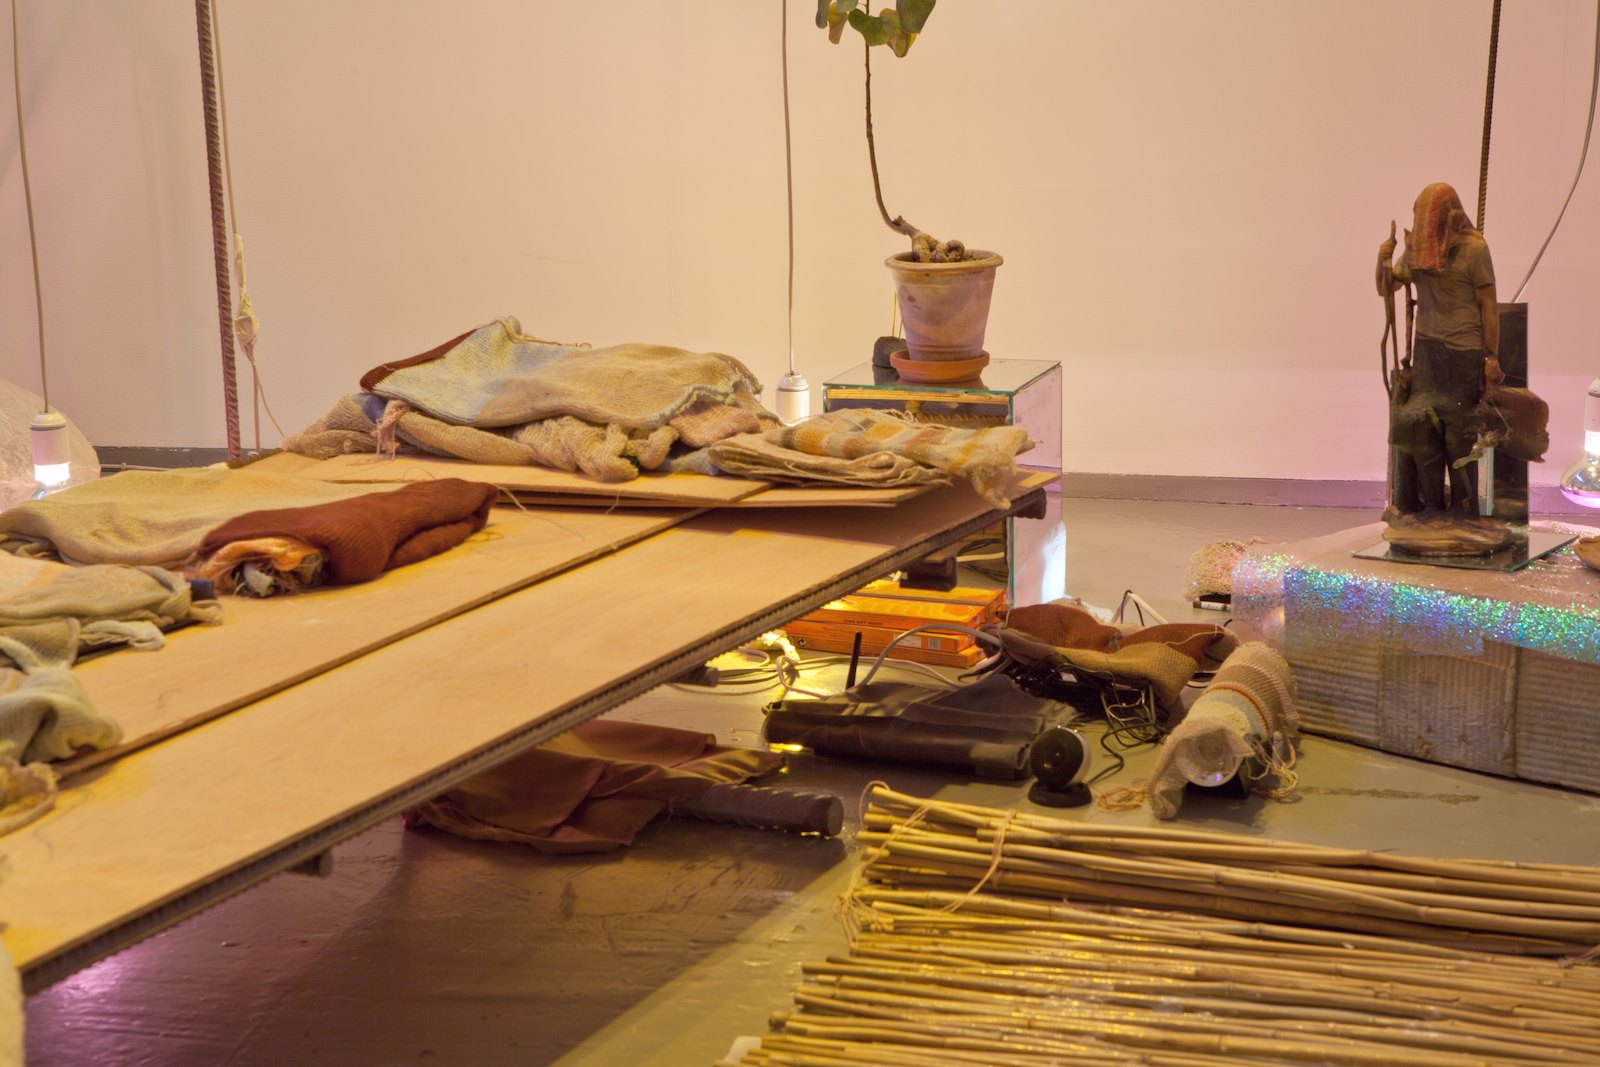 Civilization and its Discontents, 2010, detail